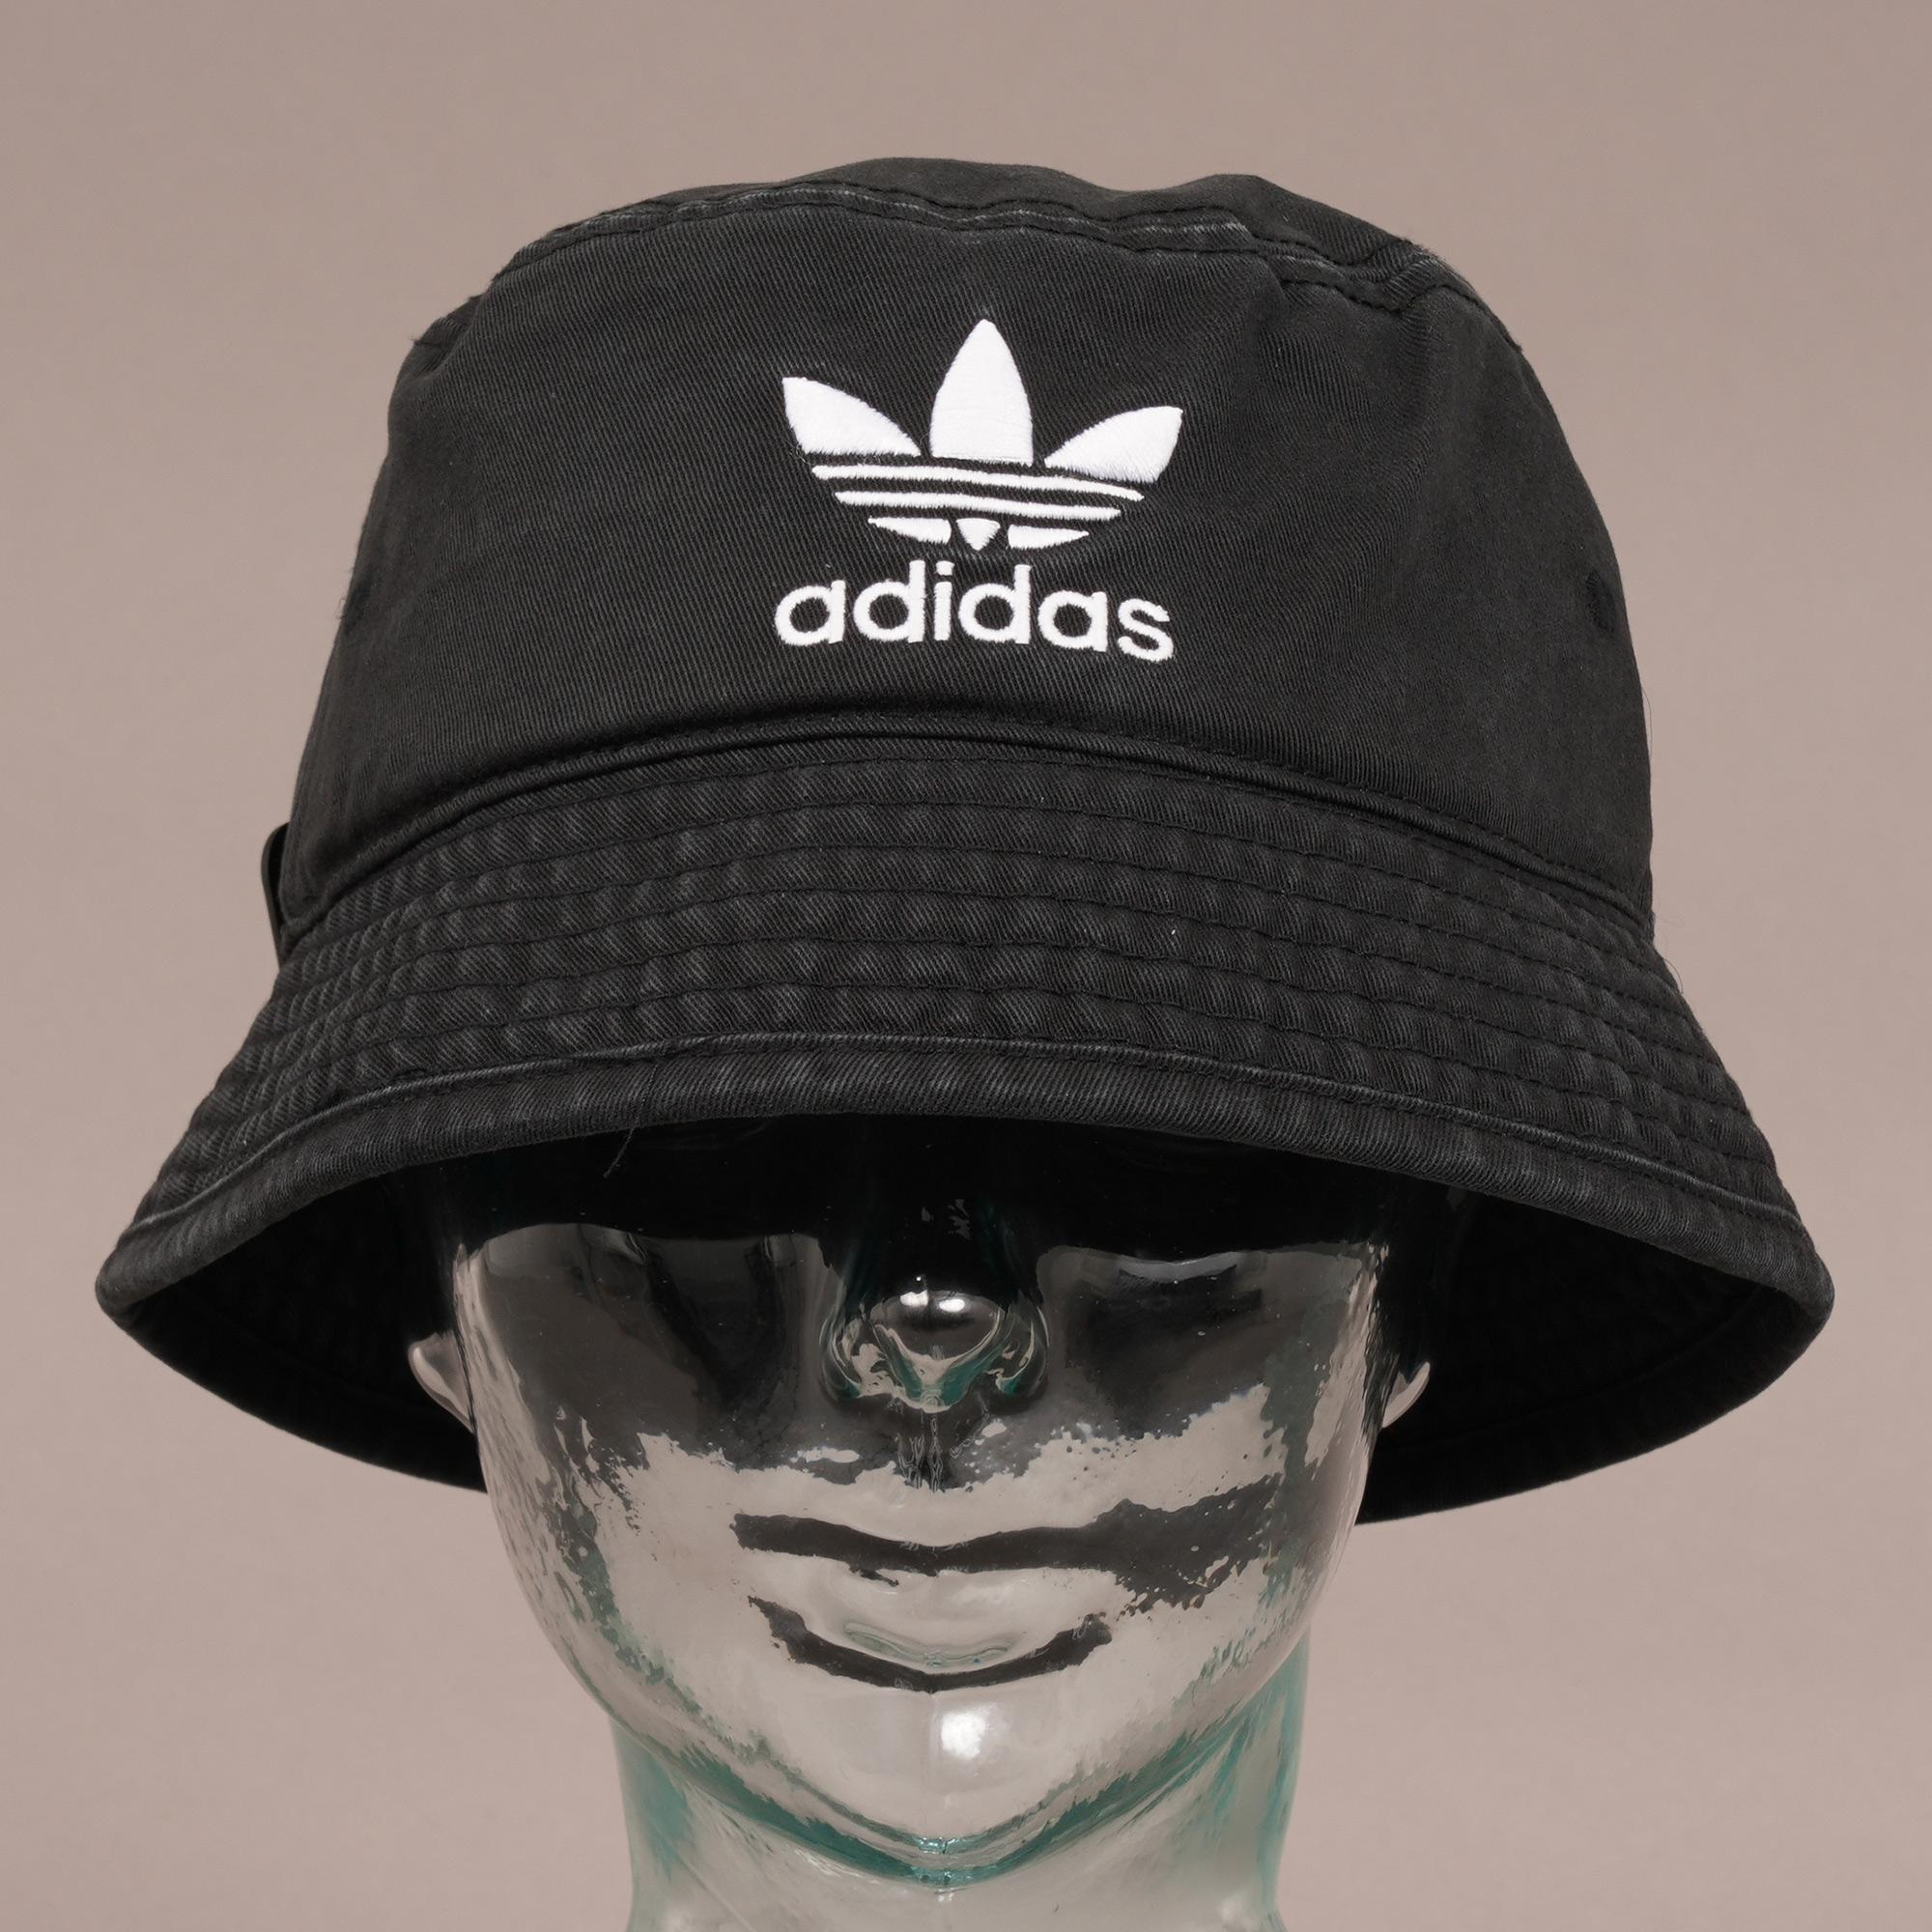 9592d527df9 ... italy adidas originals trefoil bucket hat black for men lyst. view  fullscreen 5fe00 8de80 ...